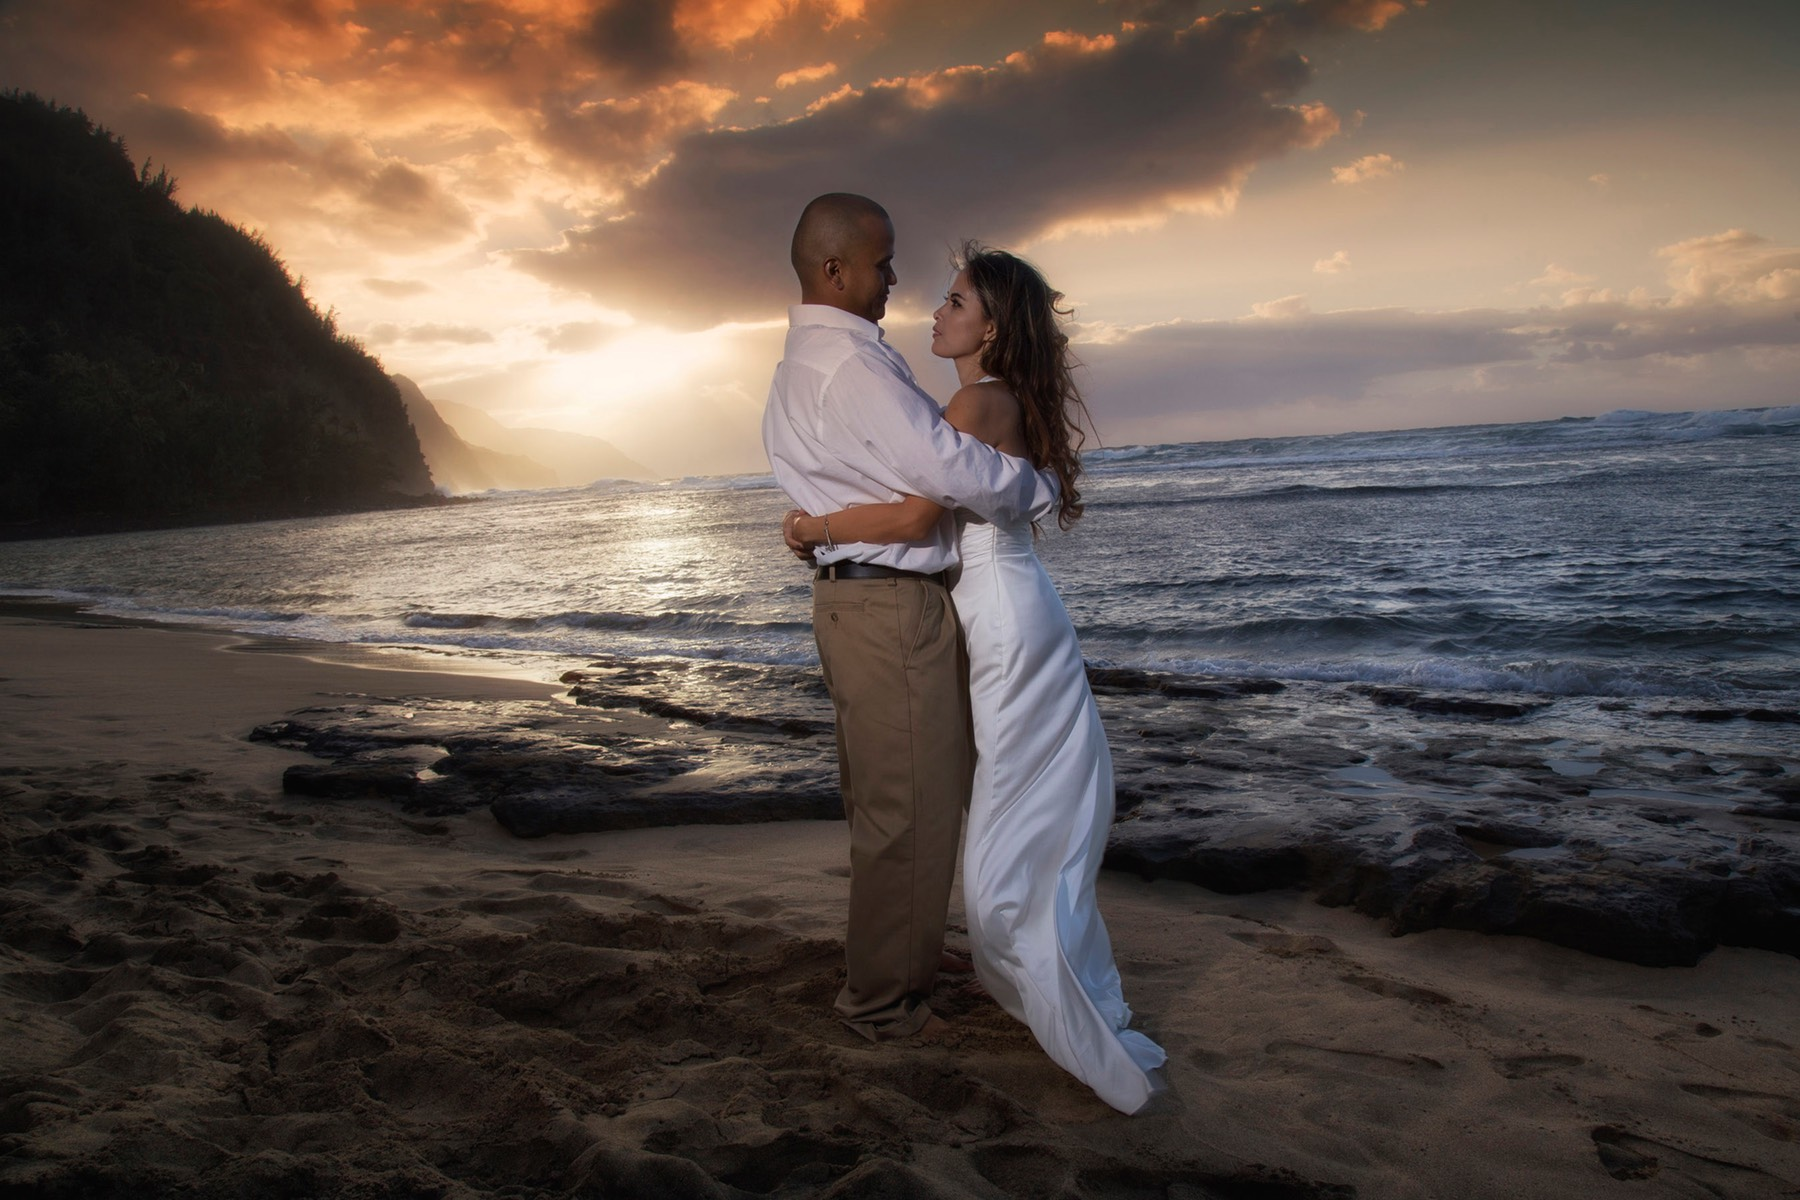 Kauai wedding photographer Difraser sunset  Ke'e beach Kauai.